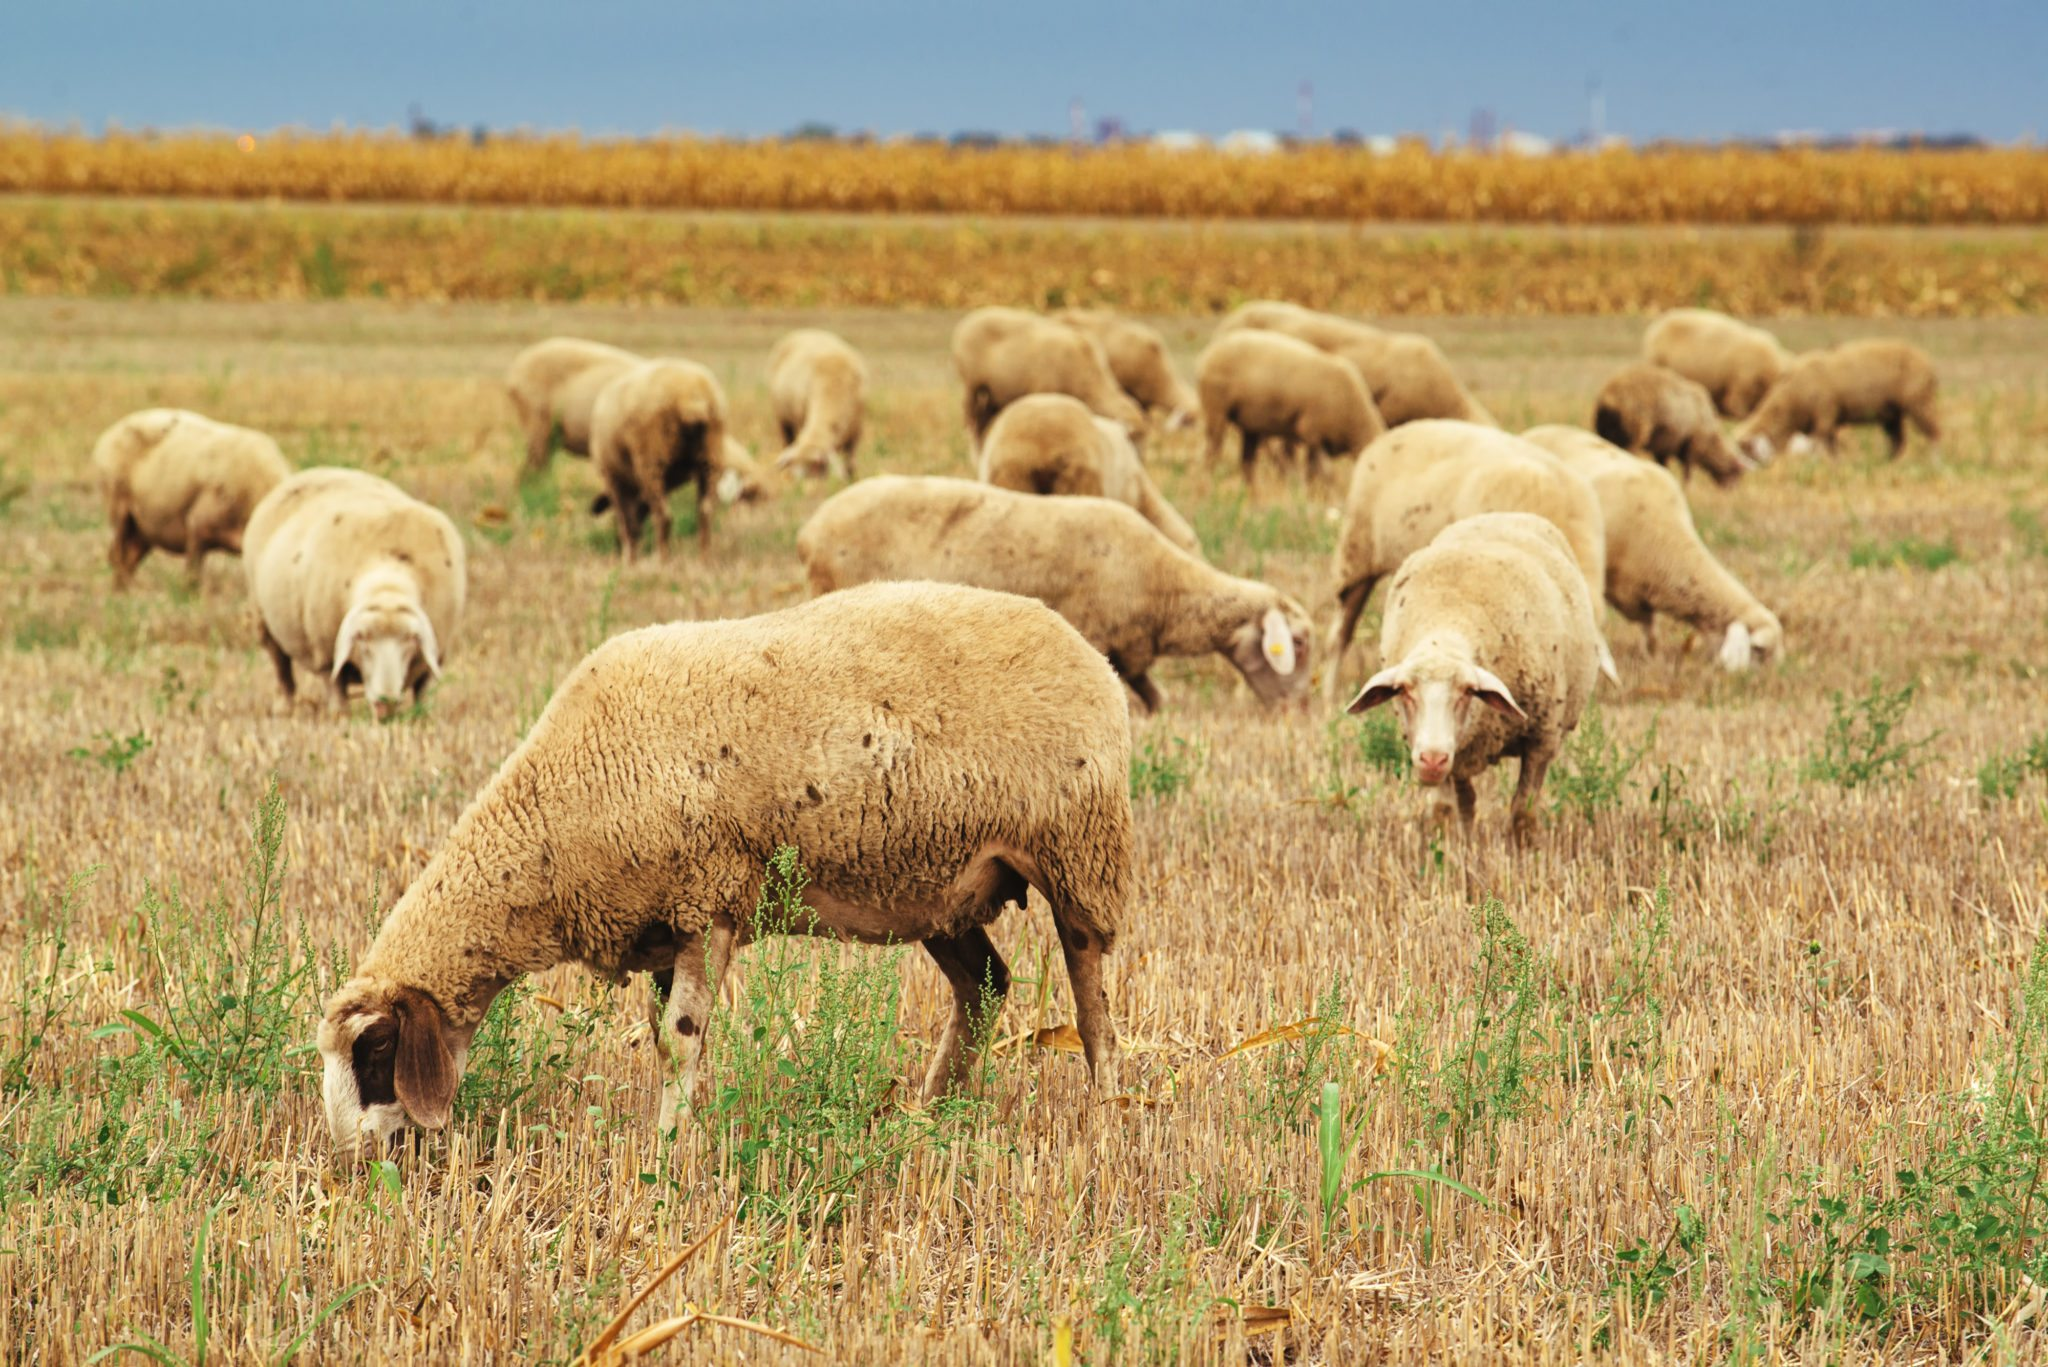 Sheep herd grazing on wheat stubble field, large group of dairy farm animals in meadow